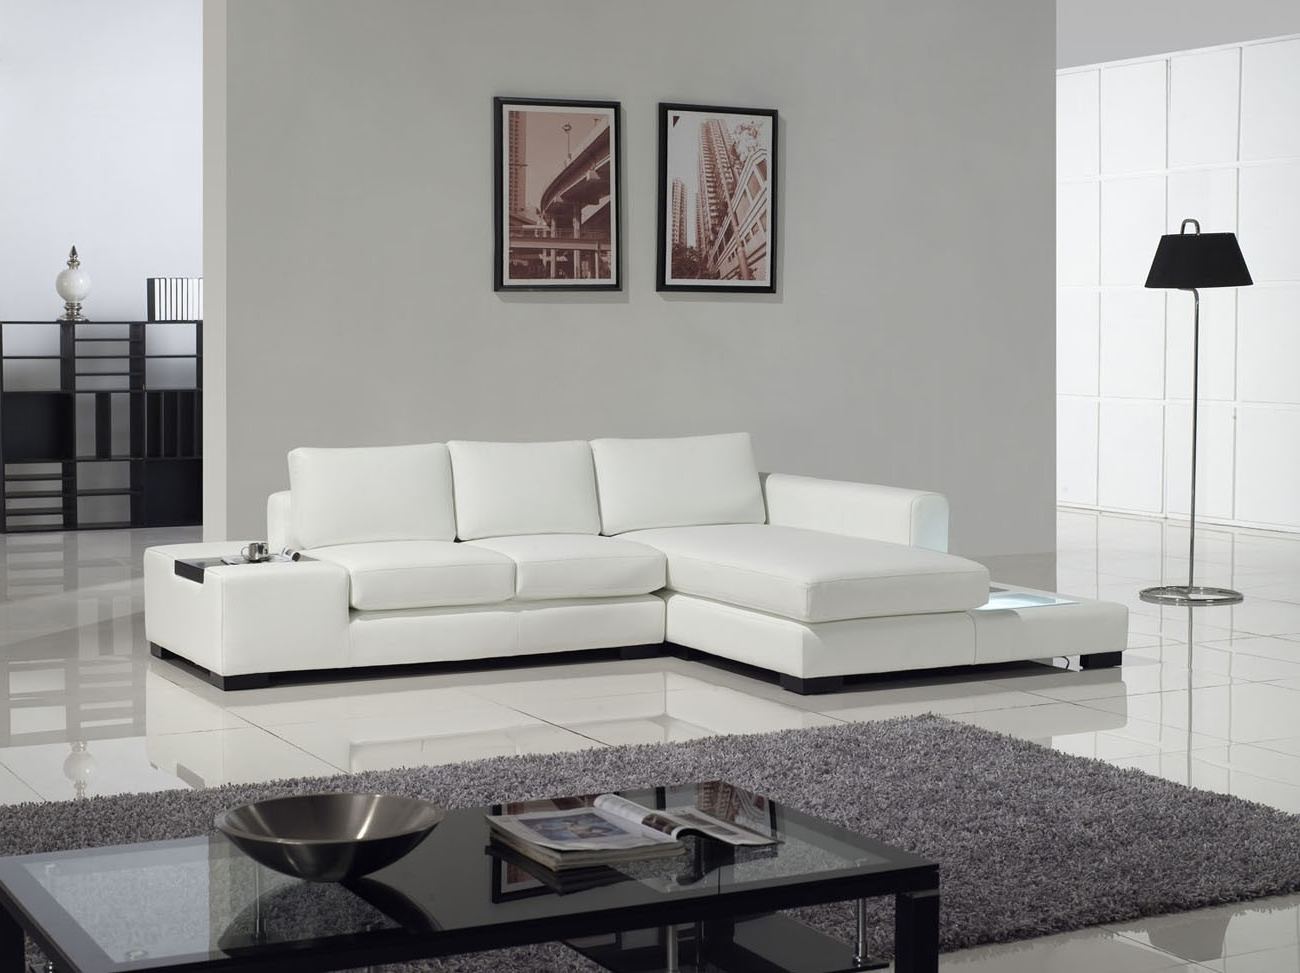 Sectional Sofa Design: Top Rated White Modern Sectional Sofa In Recent White Modern Sofas (View 8 of 15)